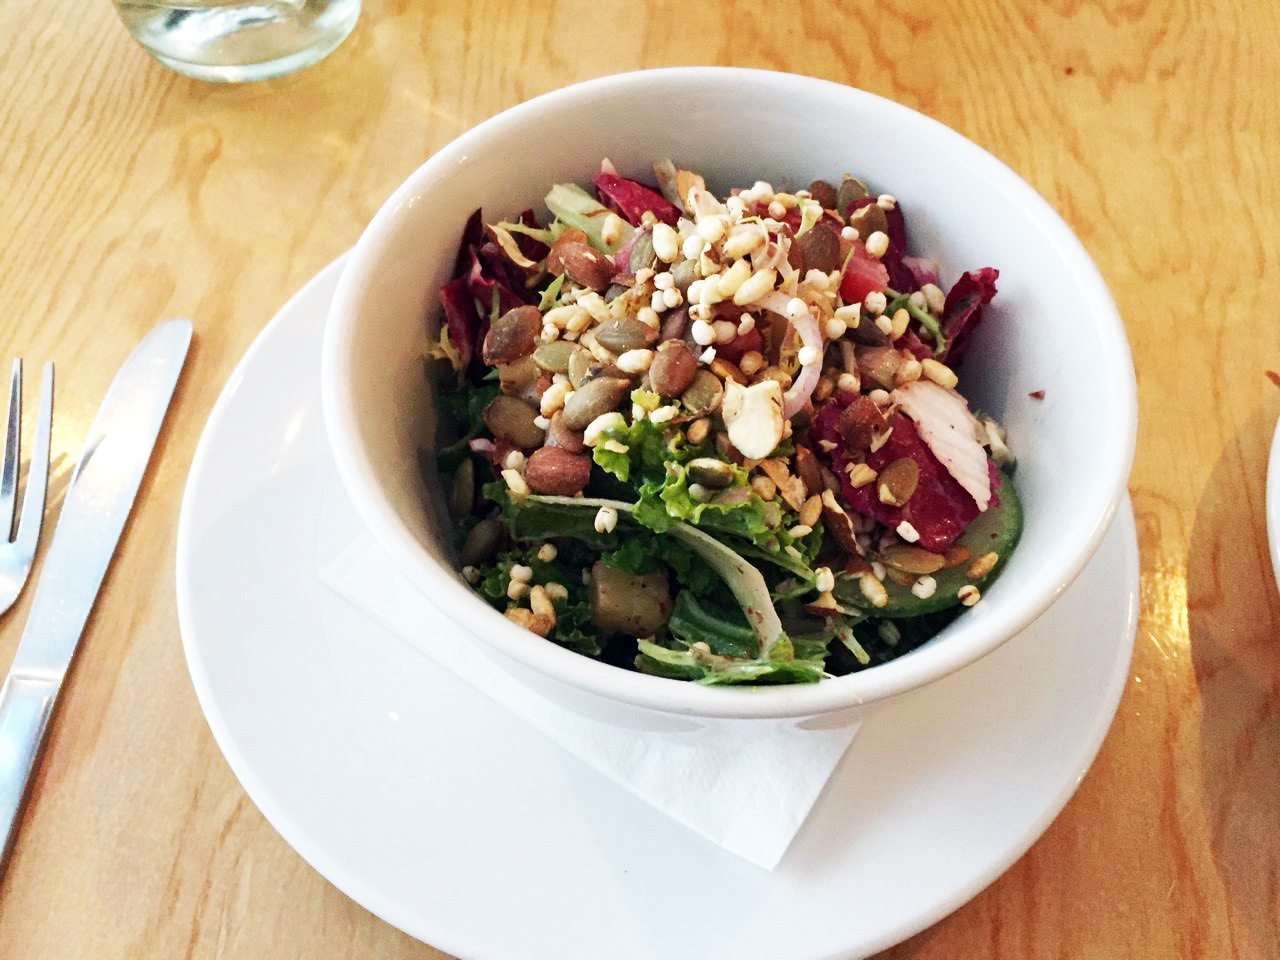 There is sweet crunch and crack and unexpected acidic pleasure in the salad, punched with a preserved lemon vinaigrette